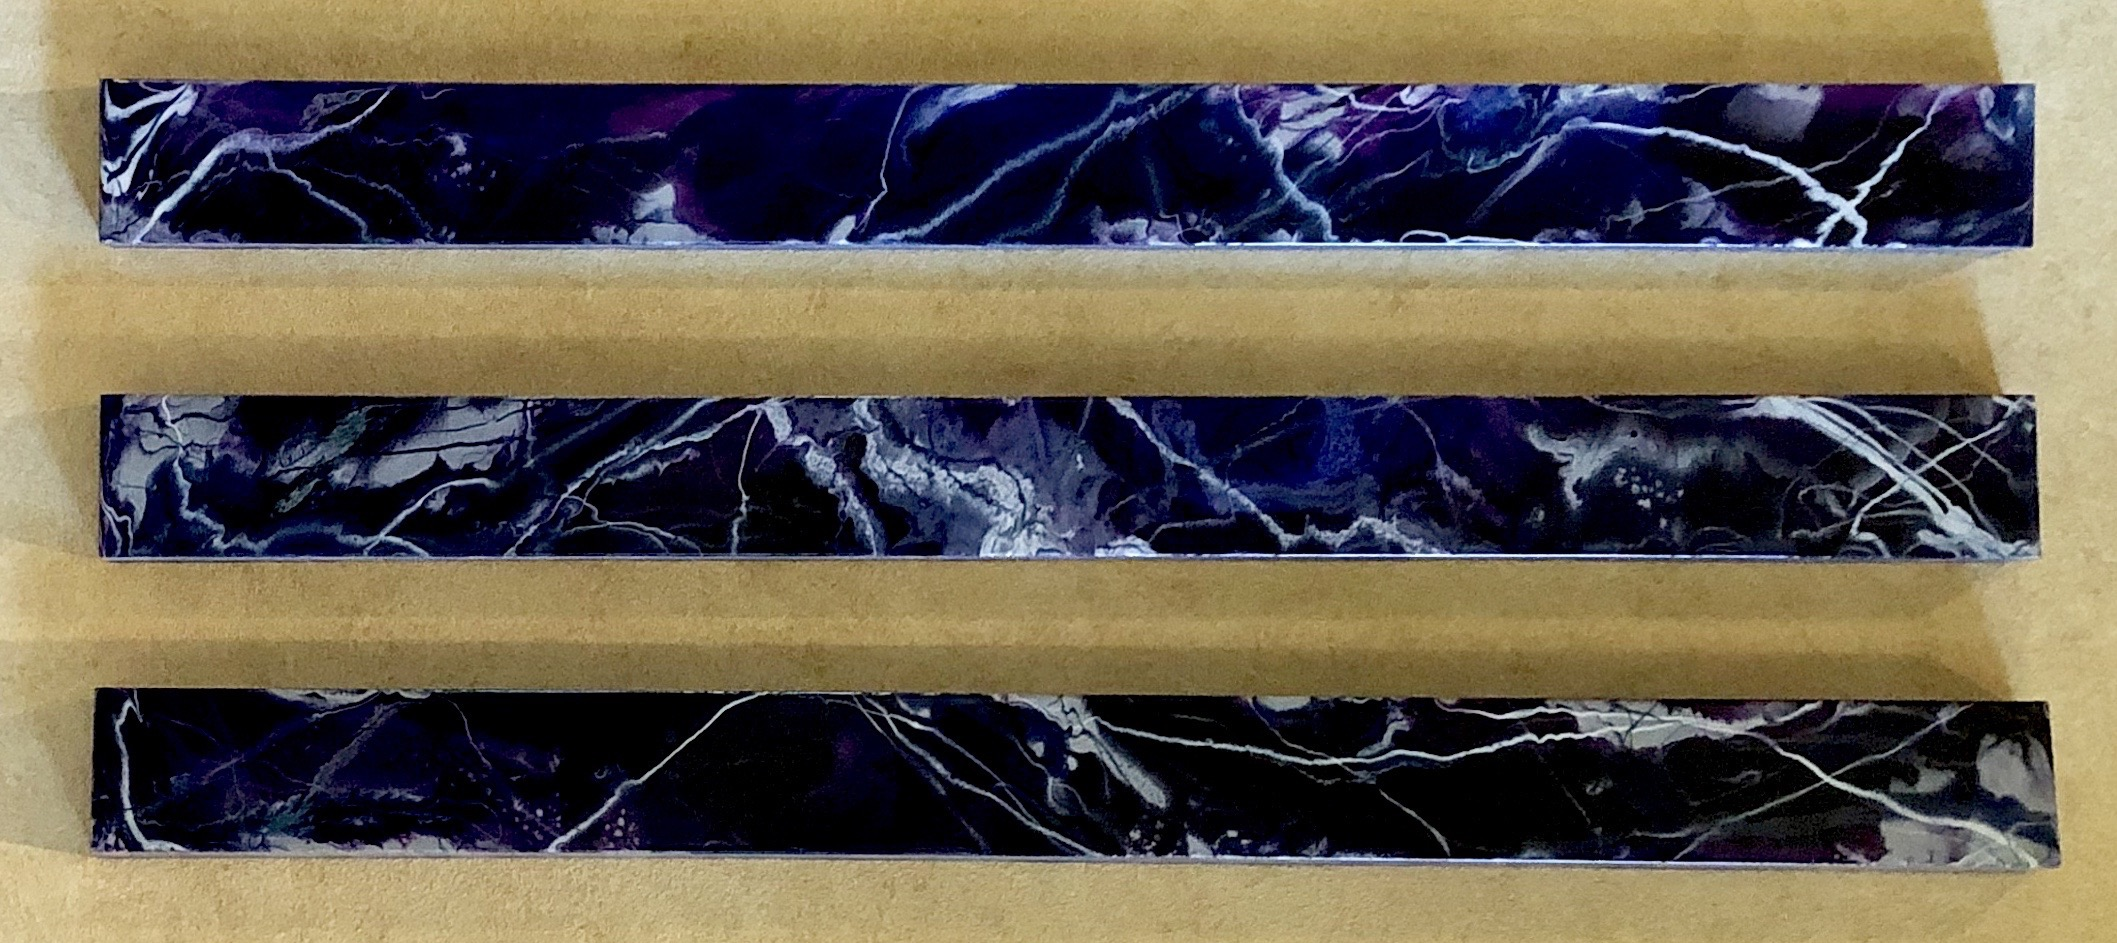 Title unknown, 2018. Acrylic, pigment and resin, 5 x 60 inches, set of three.